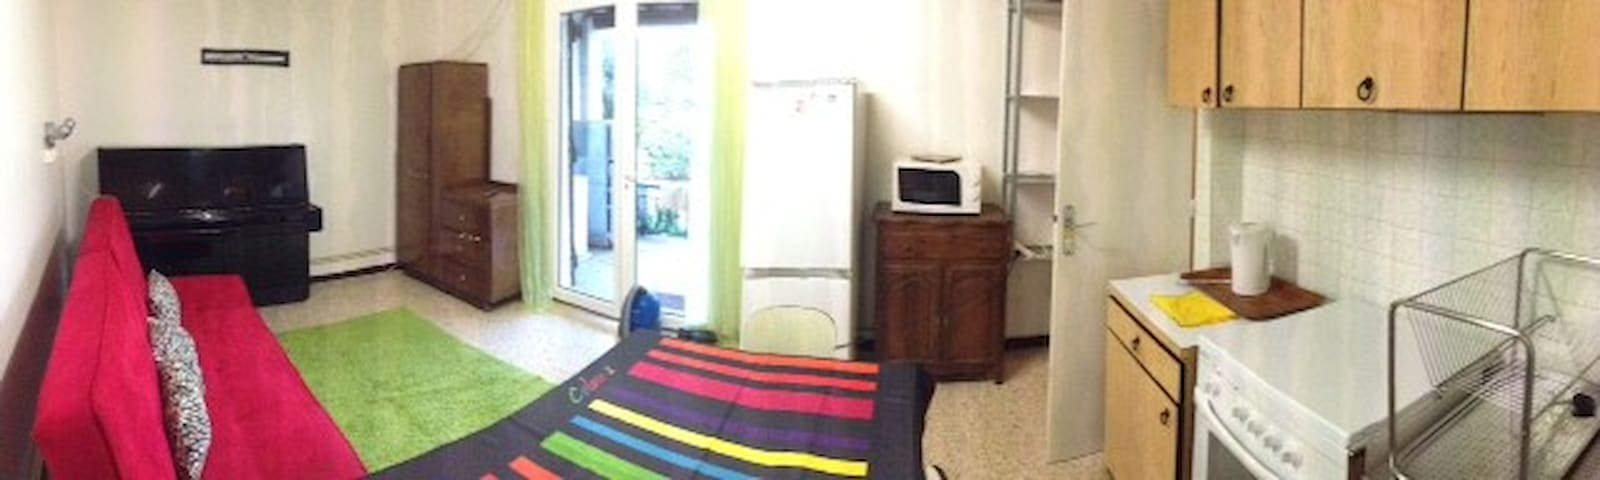 Welcome in our sweet appartement